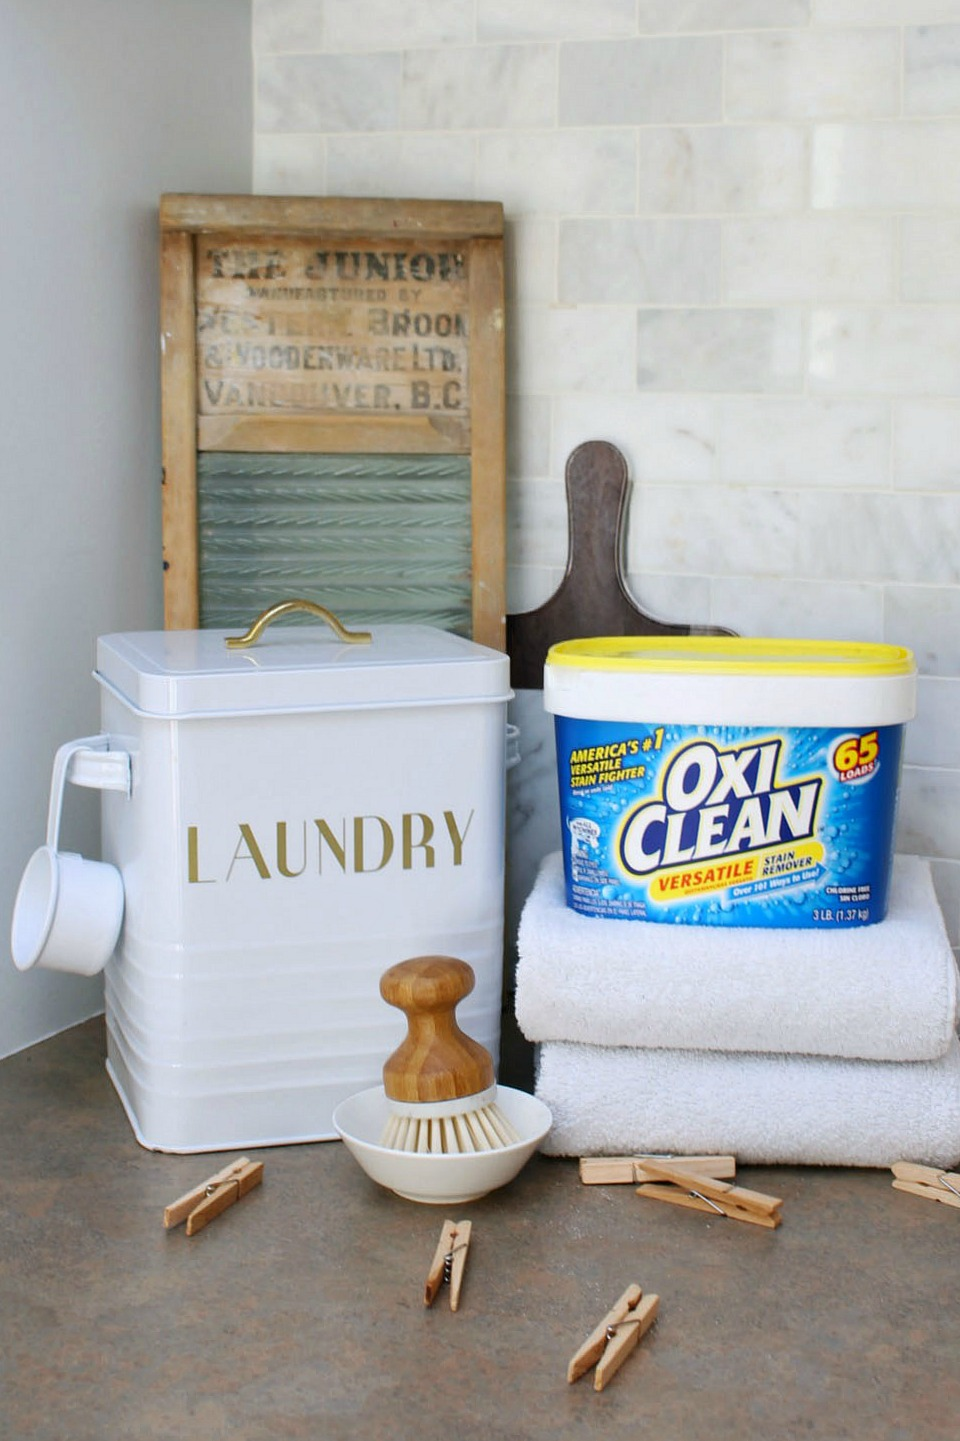 Clean This With Oxiclean  Cleaning, Cleaning Hacks, Oxiclean Cleaning Tips and Tricks, Cleaning 101, Organization, Organization Hacks, Home Cleaning Hacks, Popular Pin #Cleaning #CleaningHacks